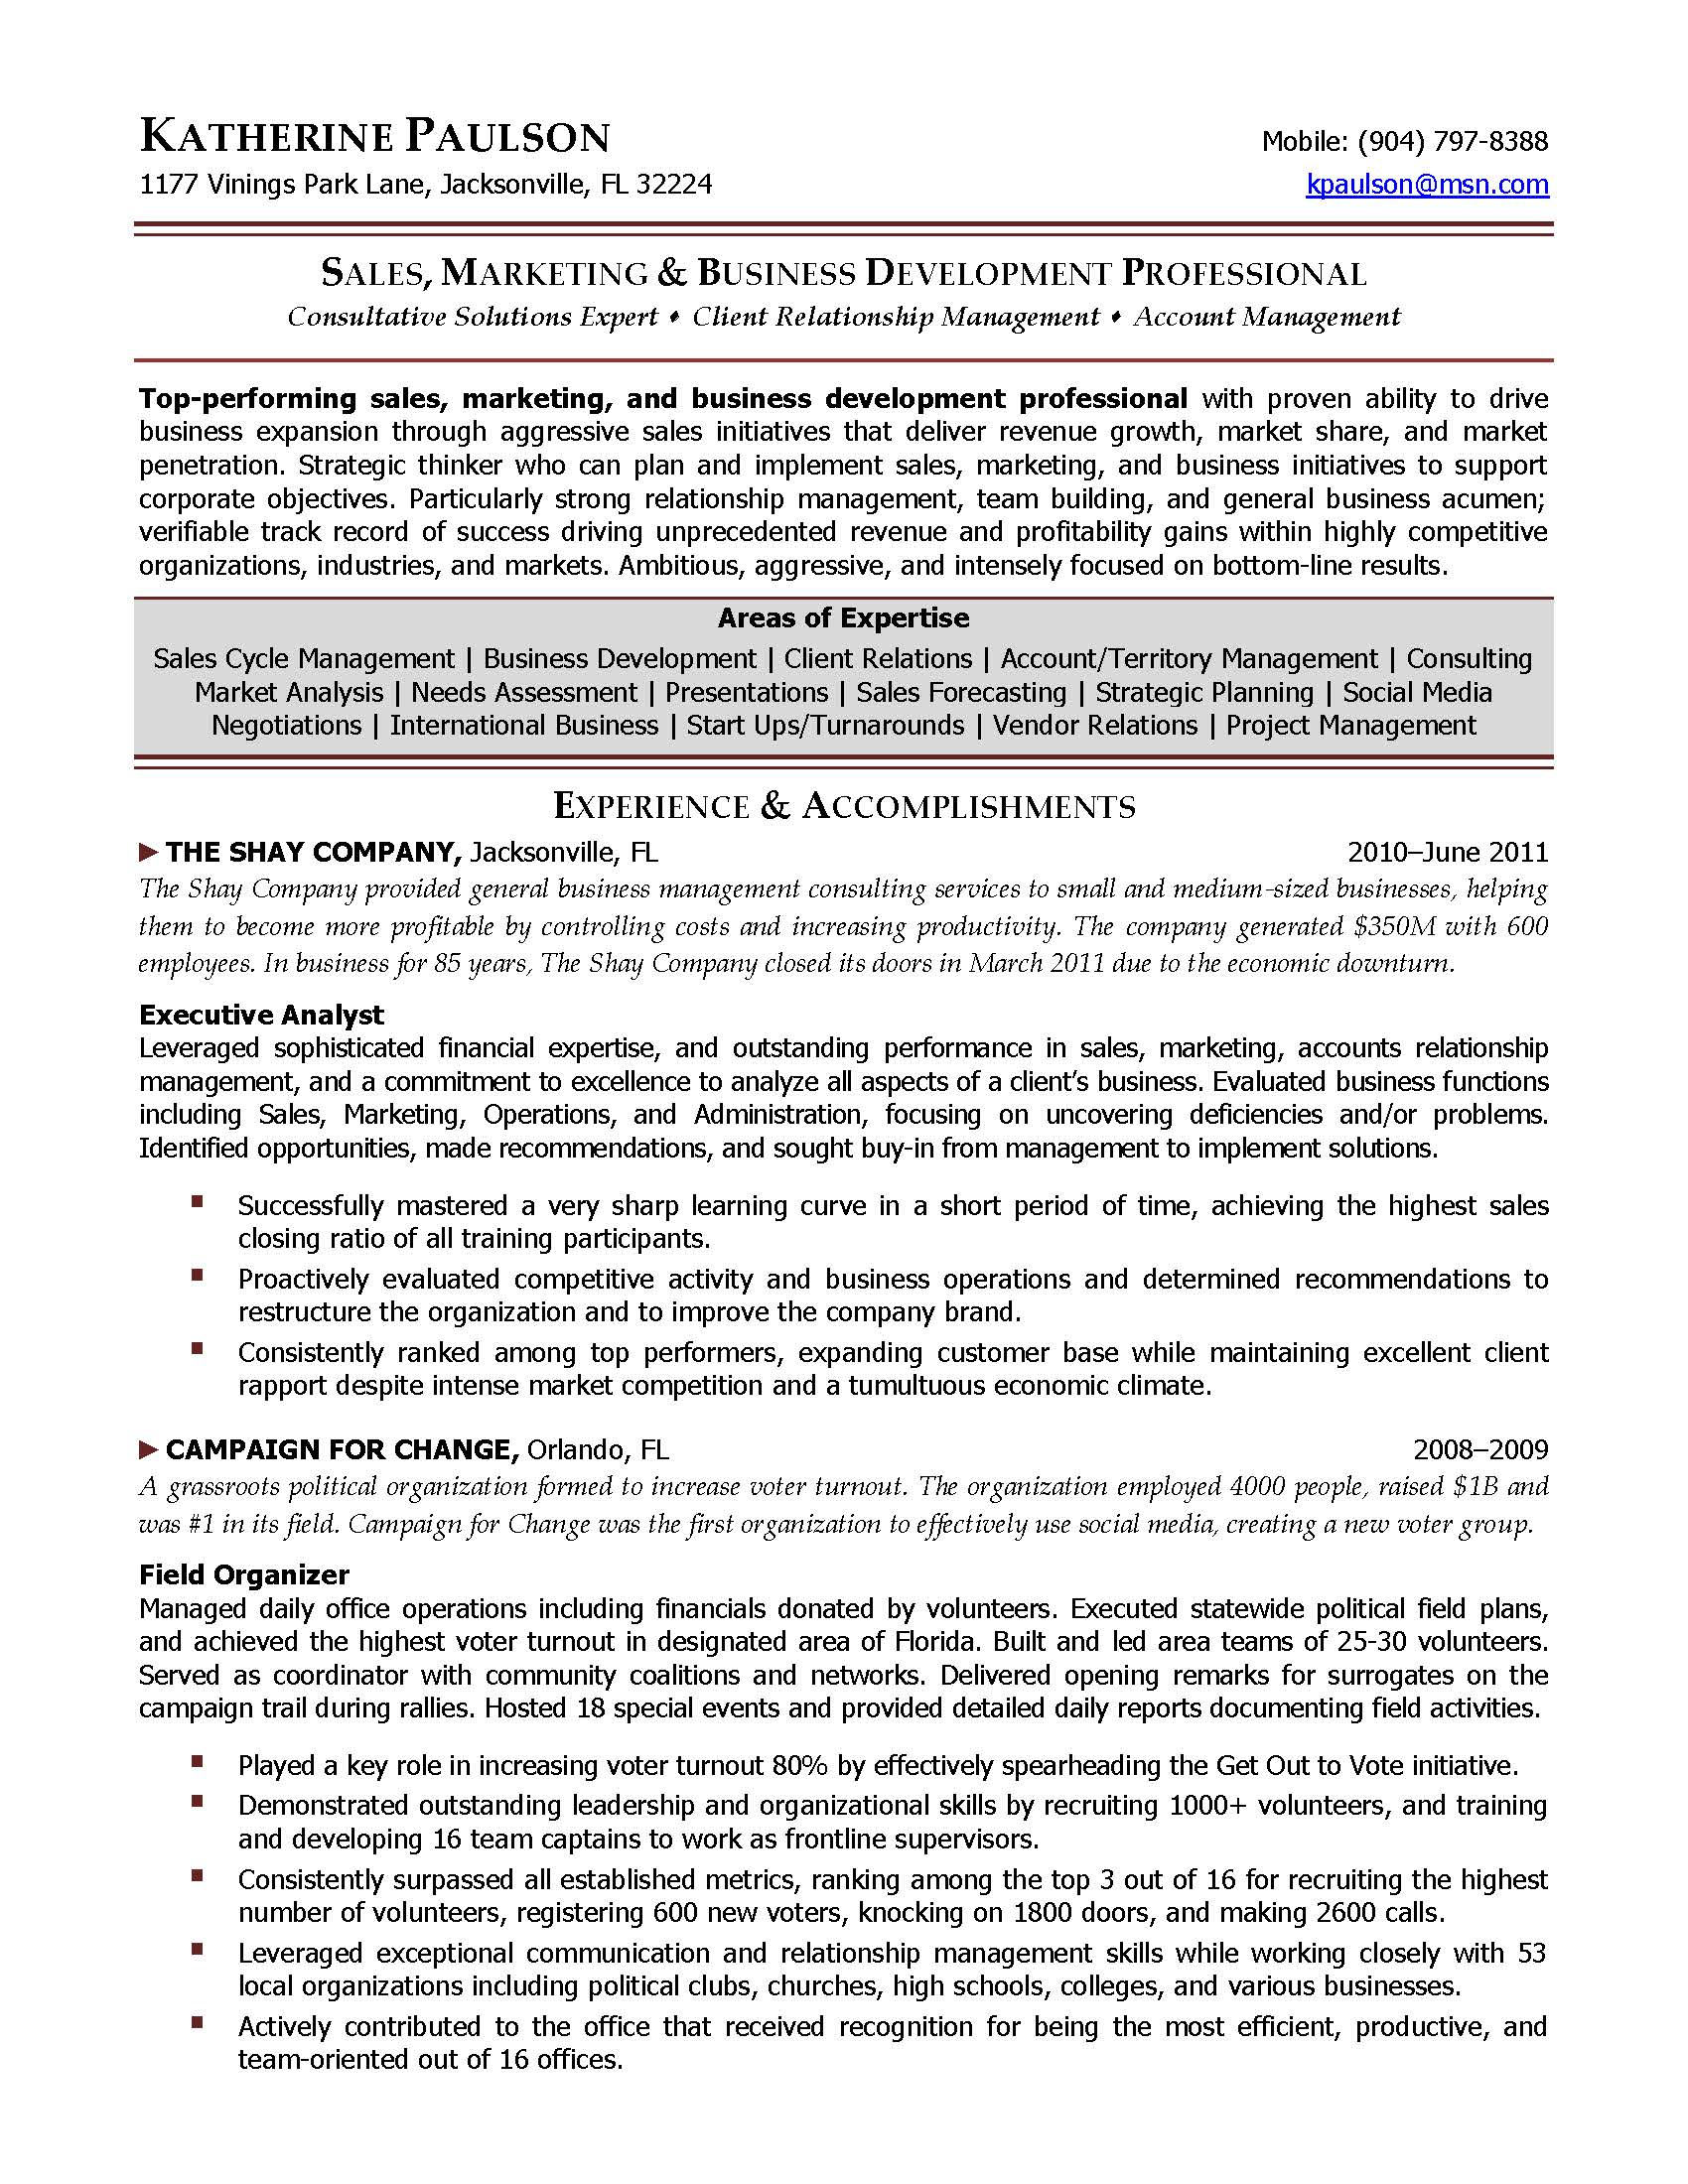 Business Development Director Resume Sample, Provided By Elite Resume  Writing Services  Managing Director Resume